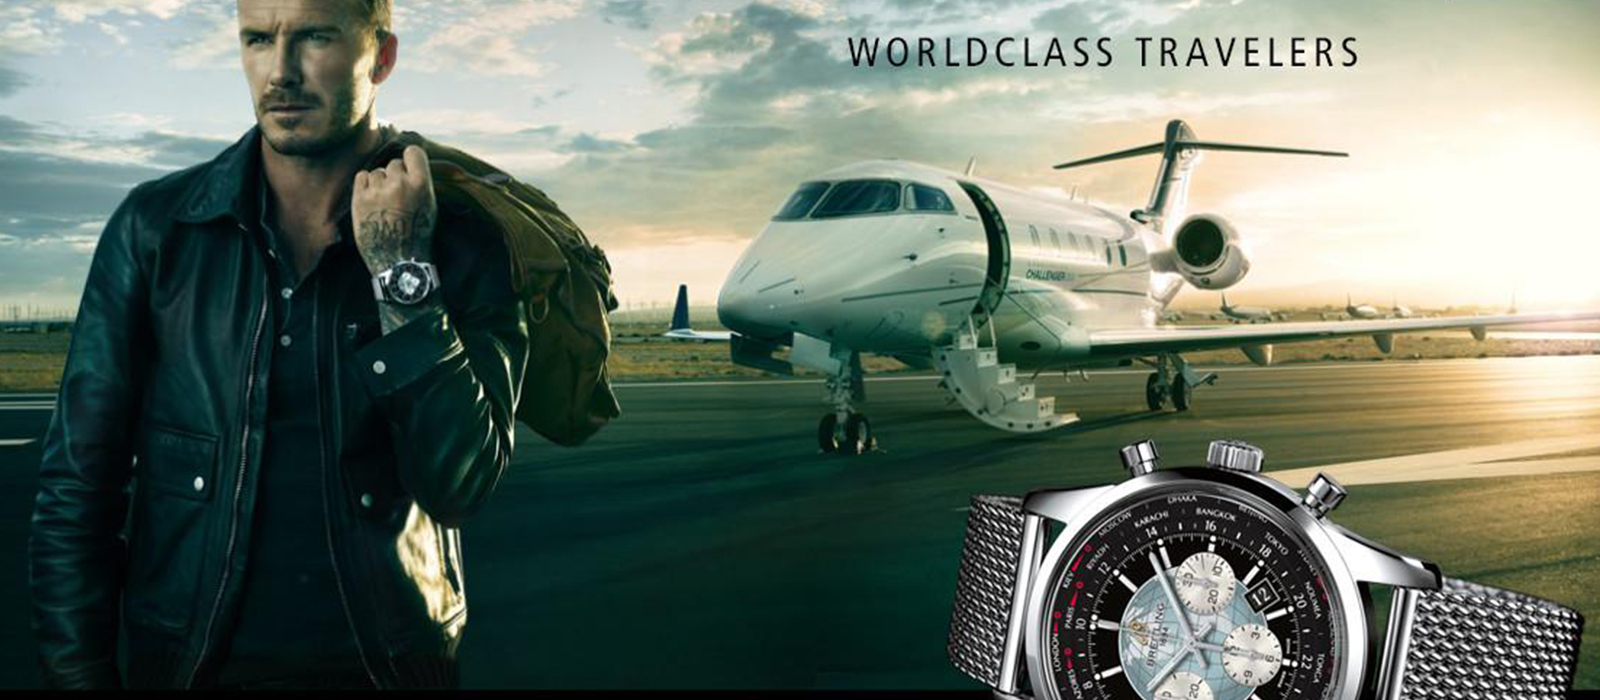 Breitling's unmistakable aviation focussed marketing…